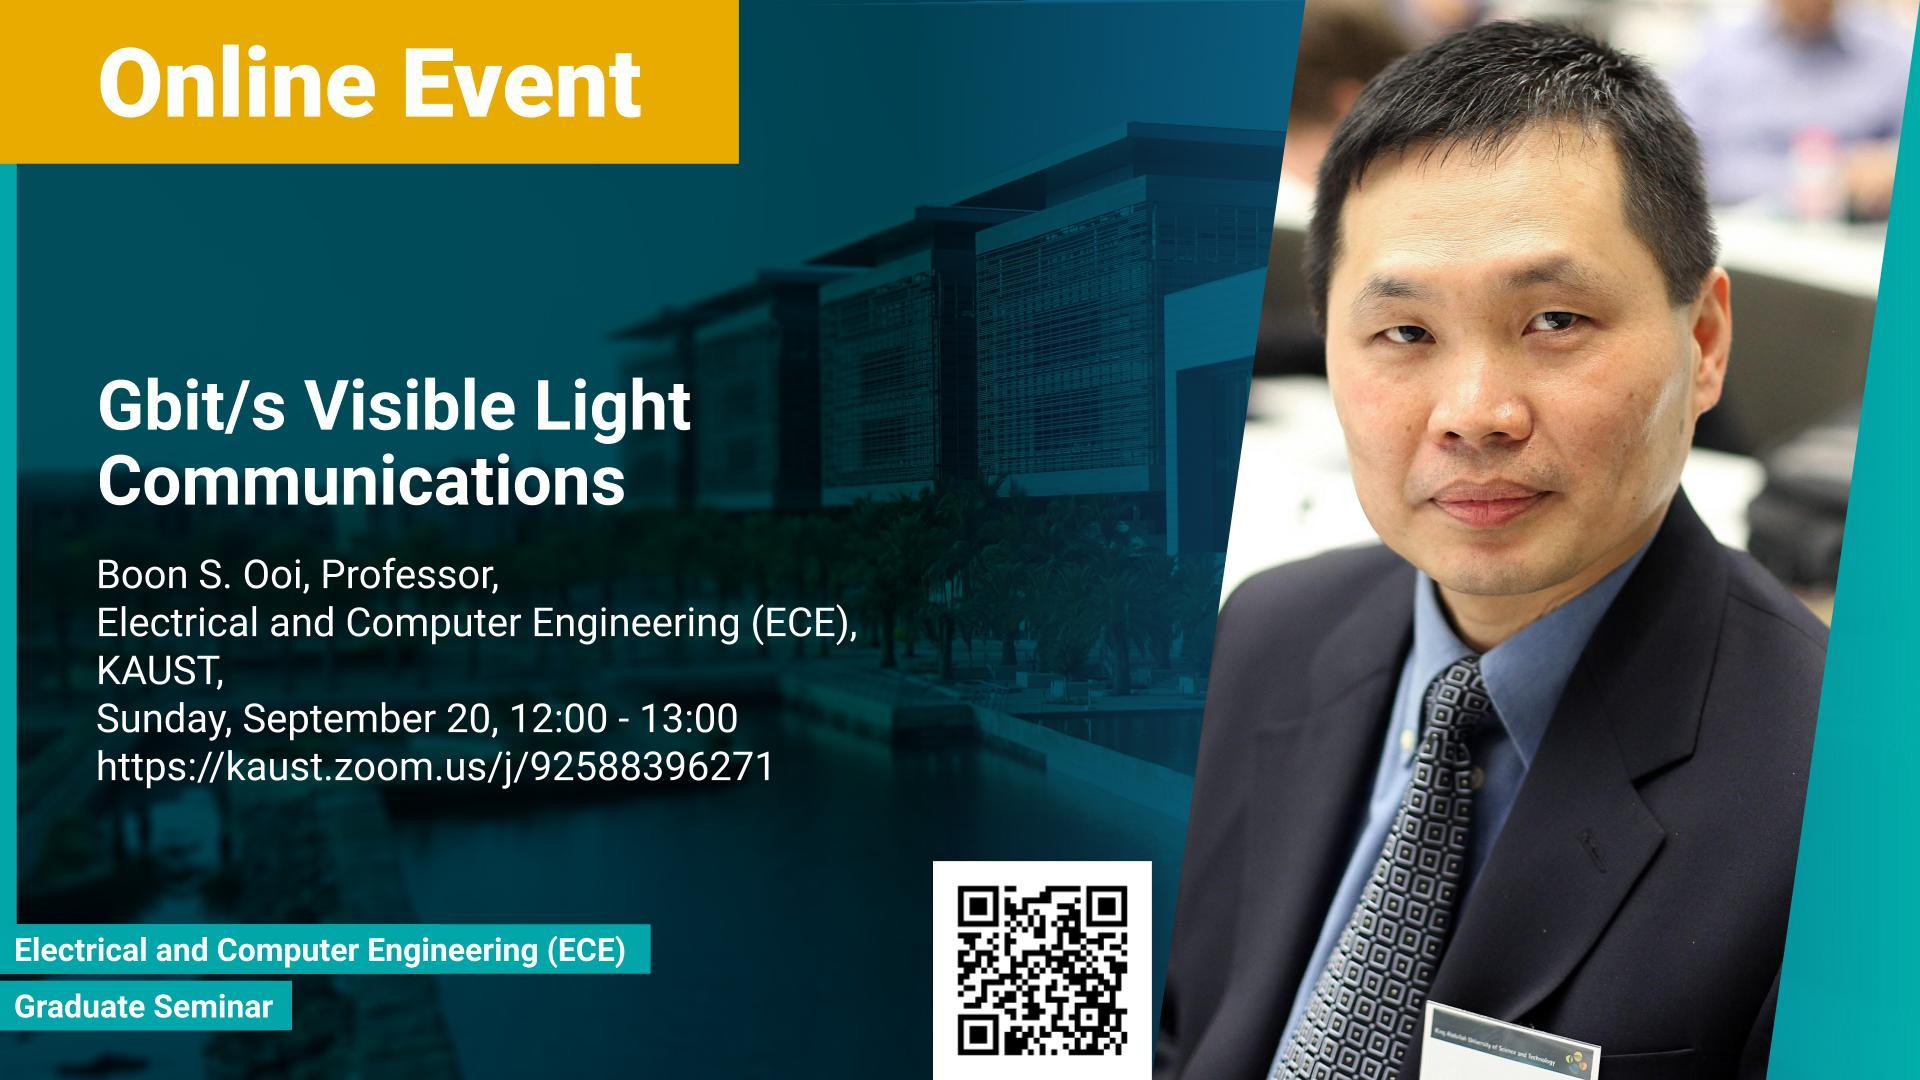 KAUST CEMSE ECE Graduate Seminar Boon S Ooi Gbit Visible Light Communications